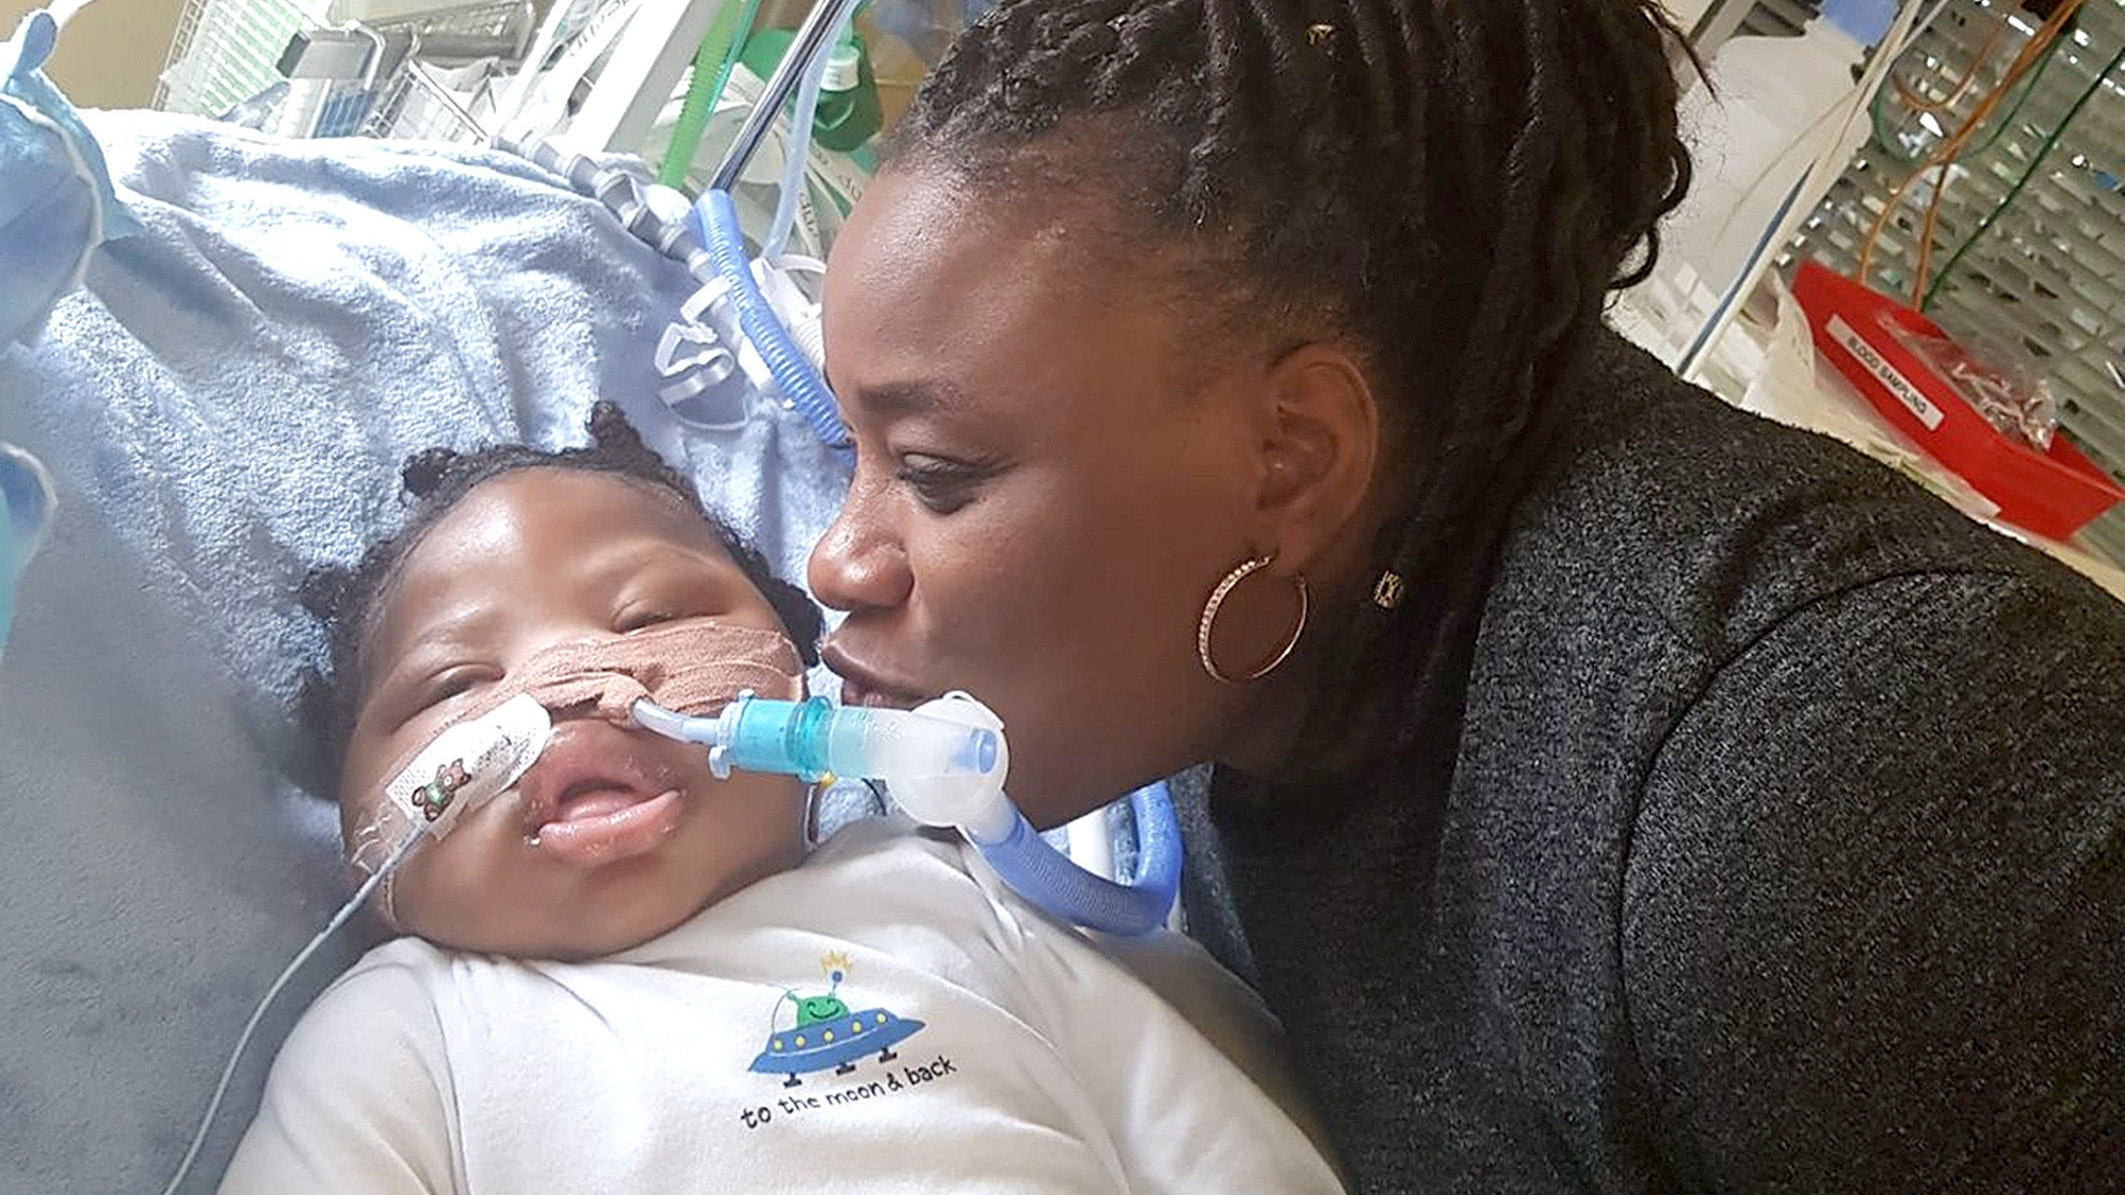 Isaiah Haastrup: Judges deny parents' appeal over decision to withdraw life support